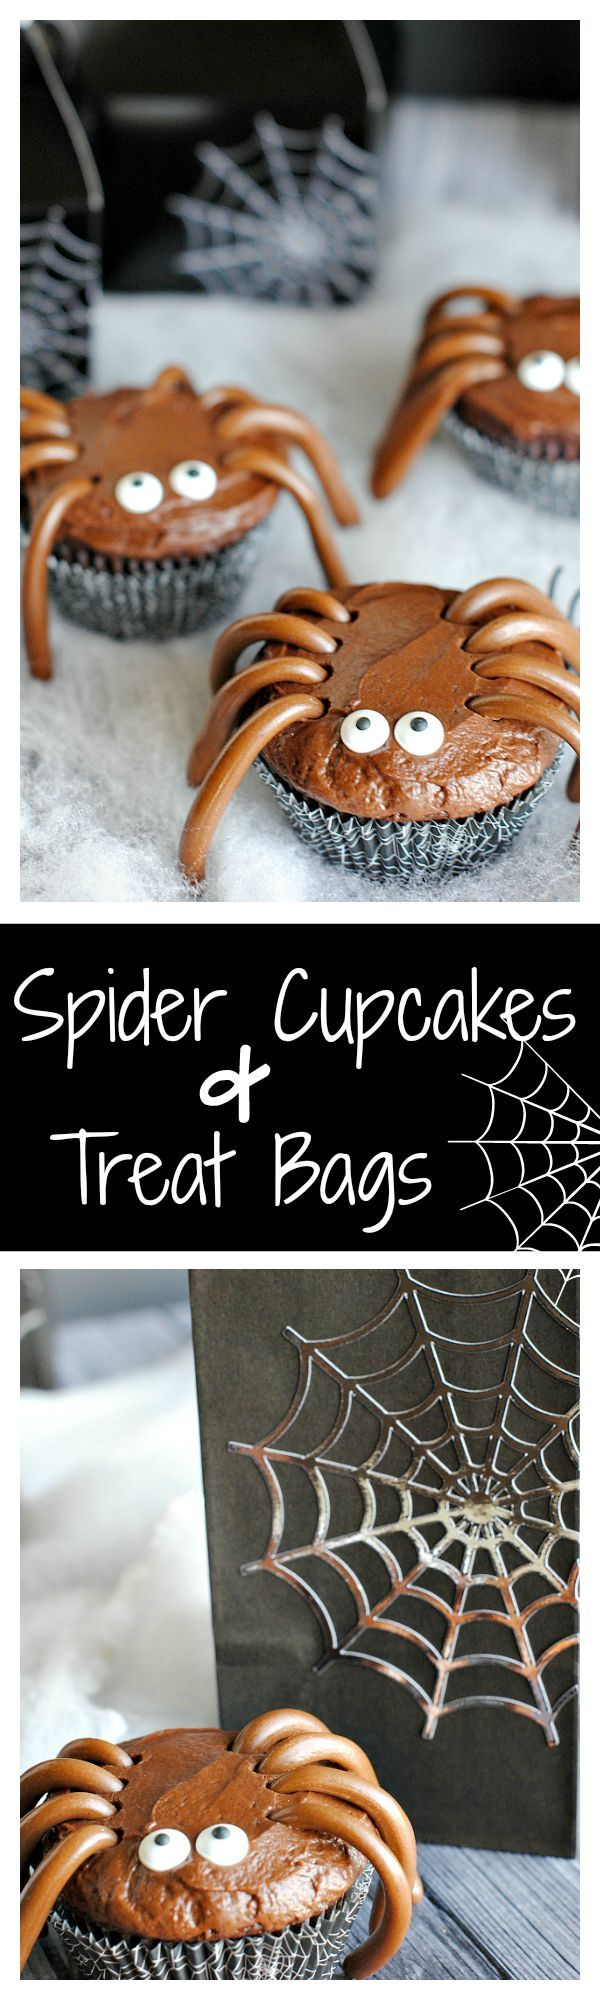 cute easy spider cupcakes and spider web treat boxes - Halloween Decorations Cupcakes